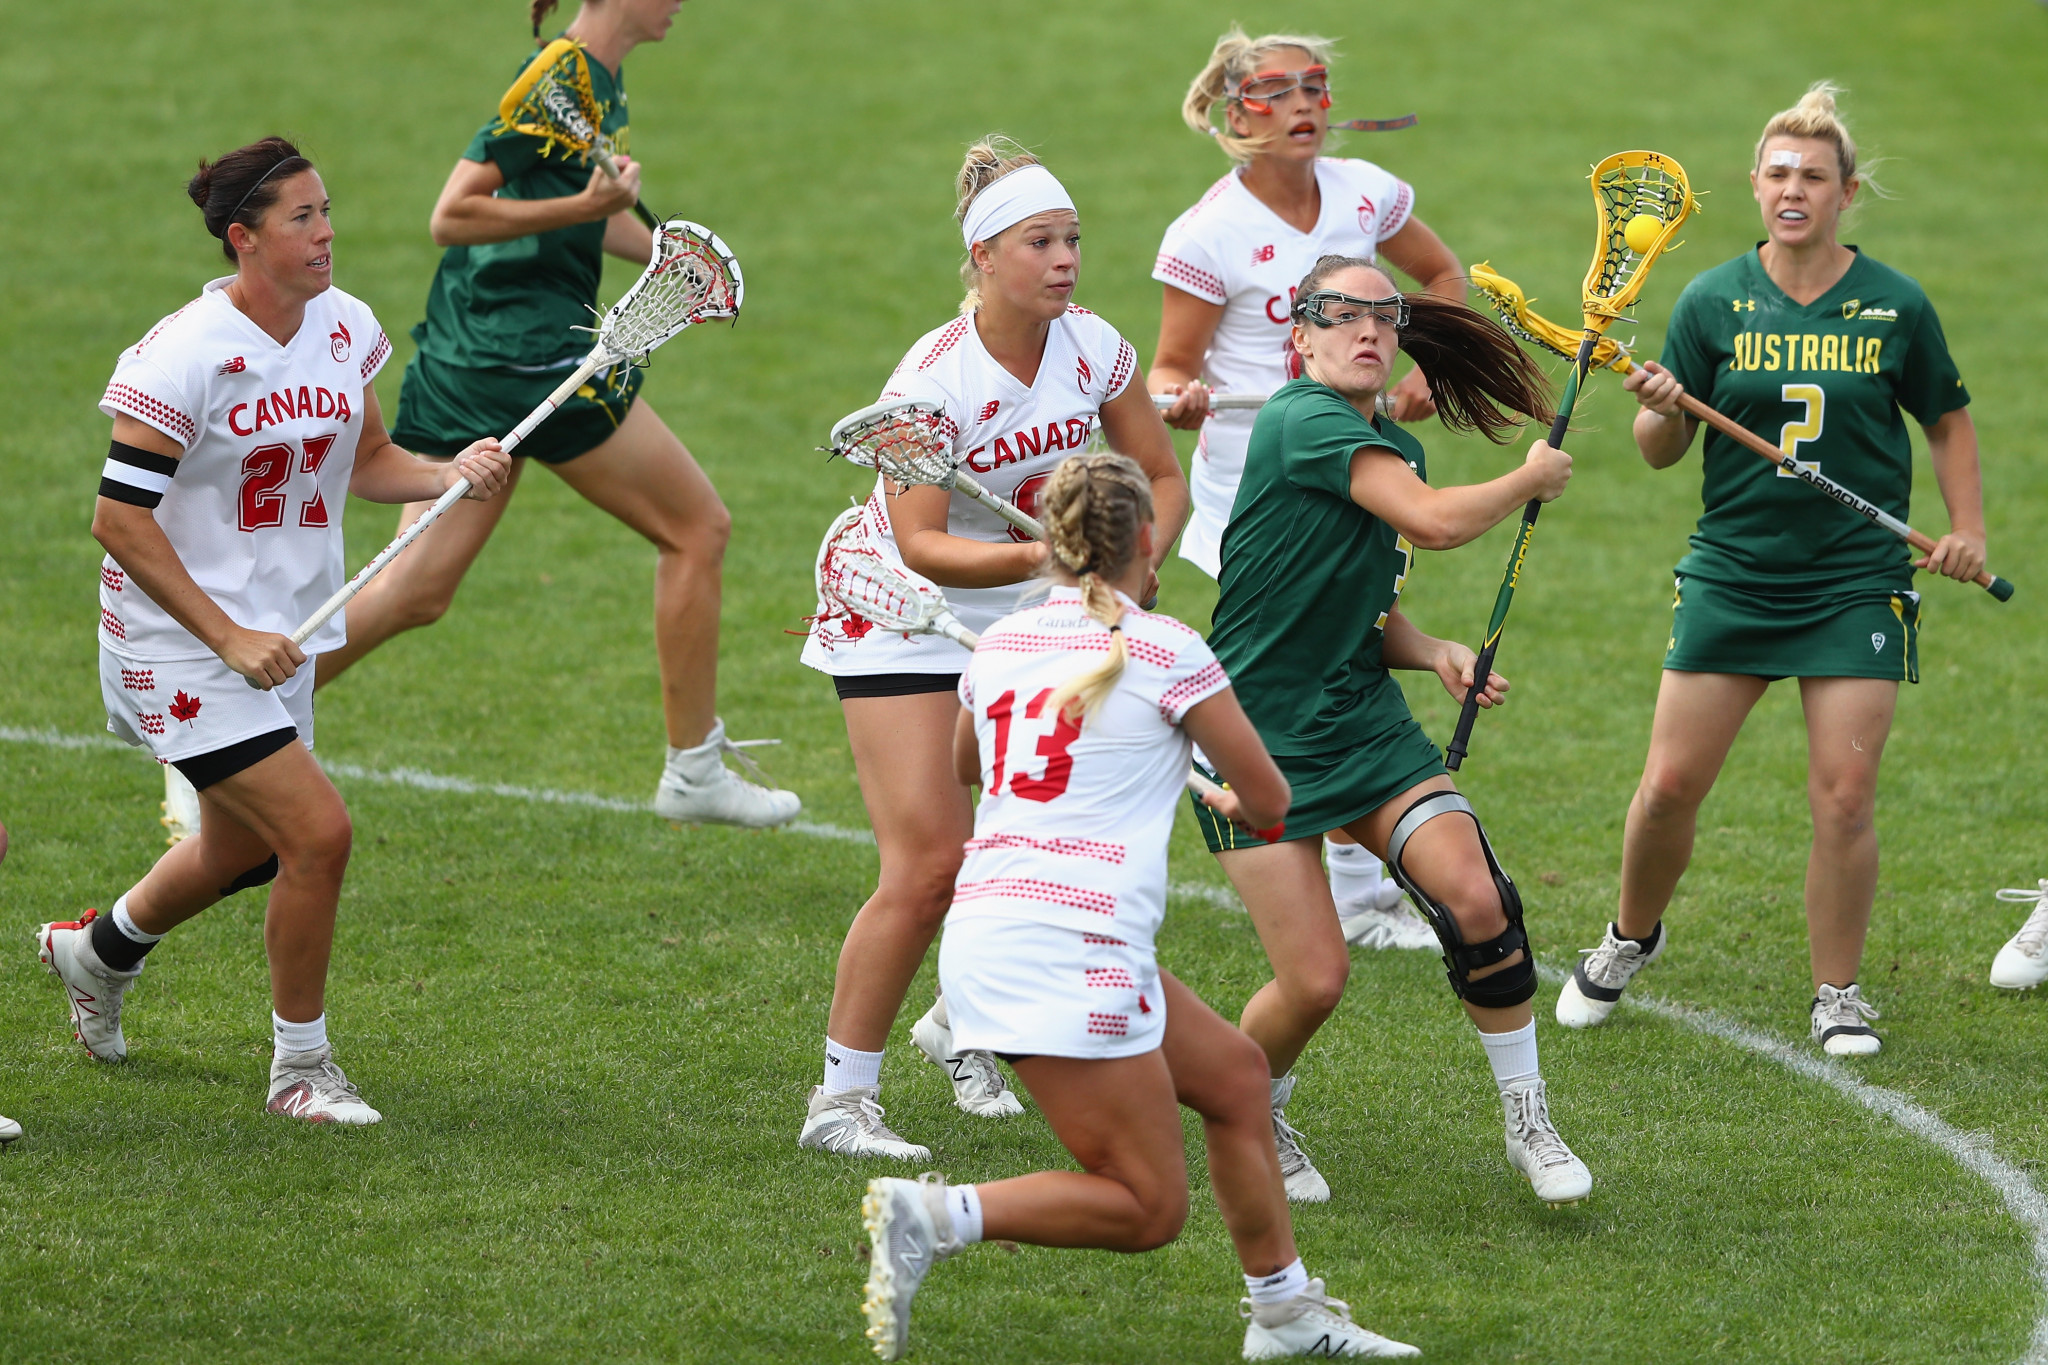 World Lacrosse Board considering changes to membership criteria